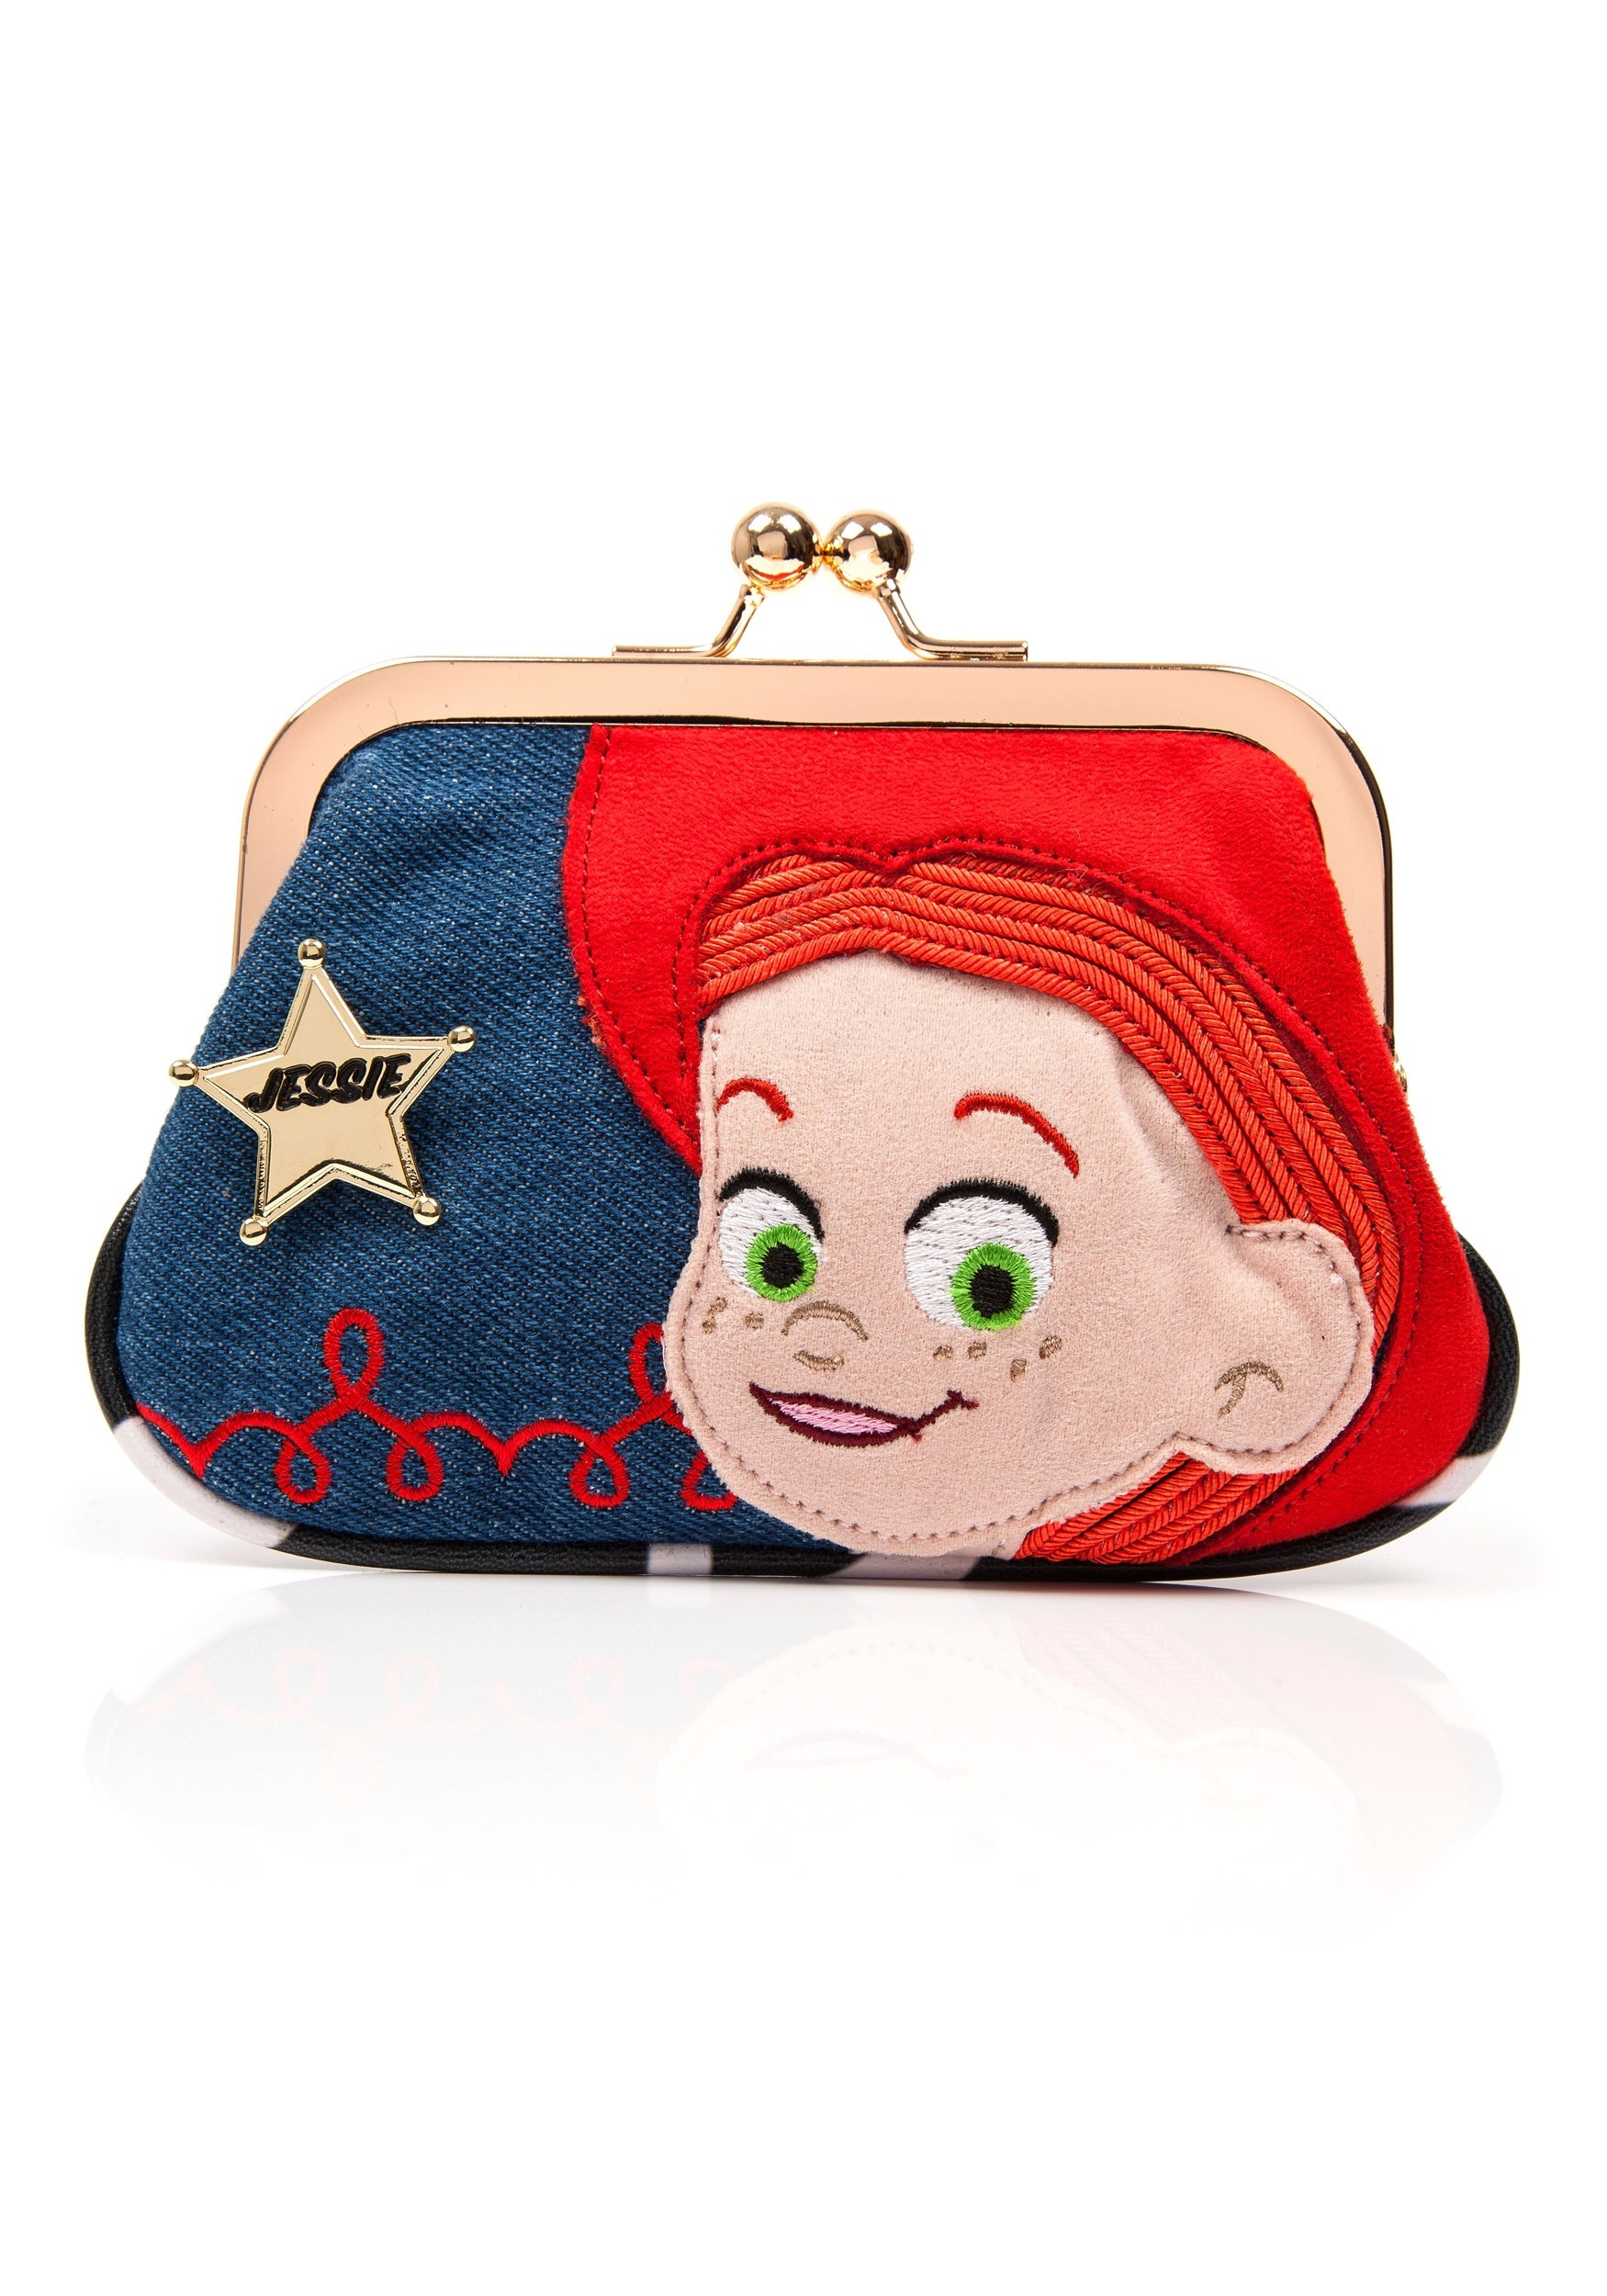 Toy Story Yeehaw Jessie Clutch Purse from Irregular Choice